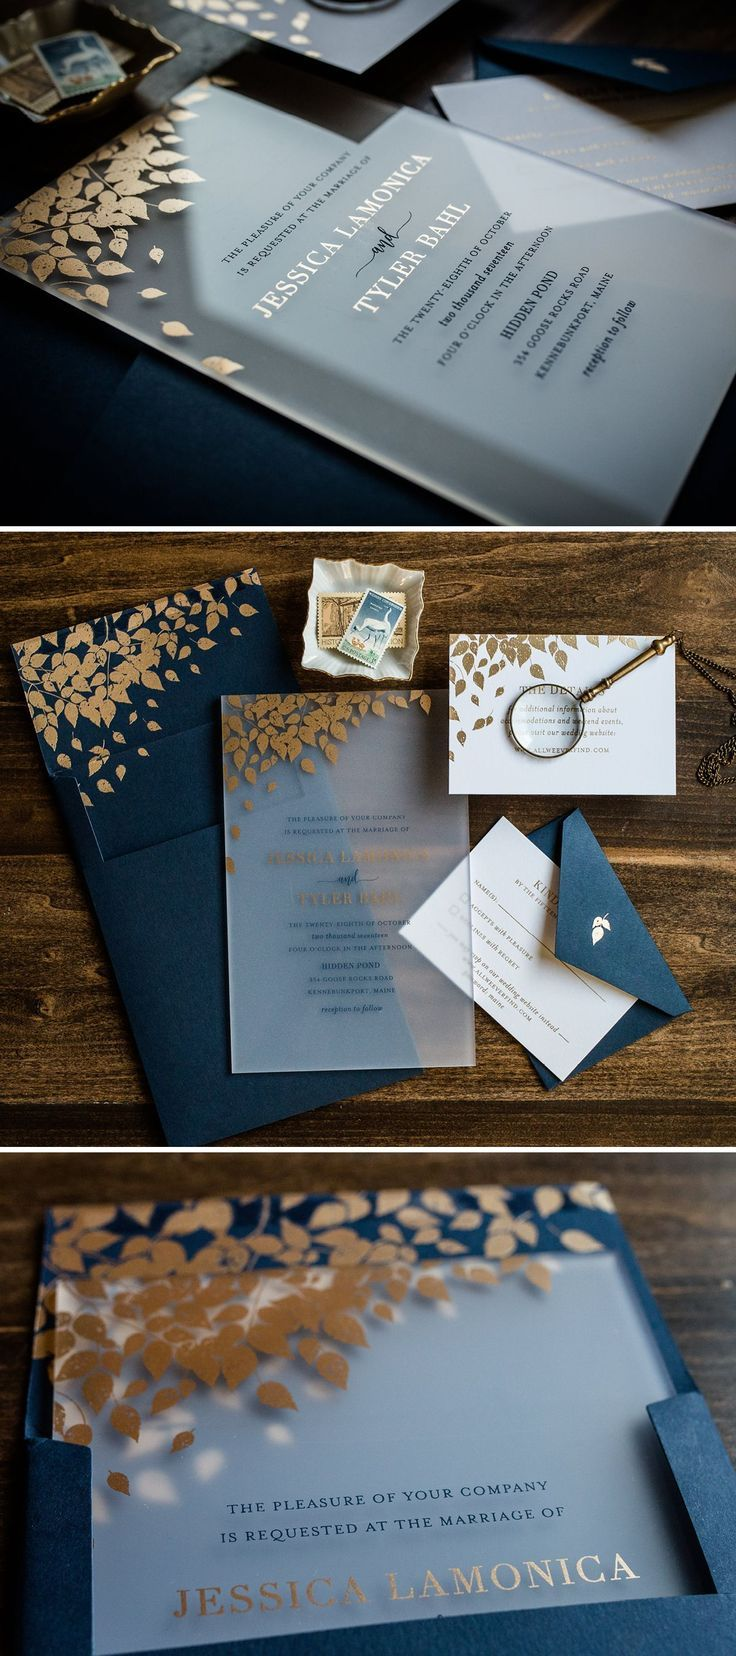 Wedding decorations vintage october 2018 Autumn Acrylic Wedding Invitation by Penn u Paperie with Gold Leaves